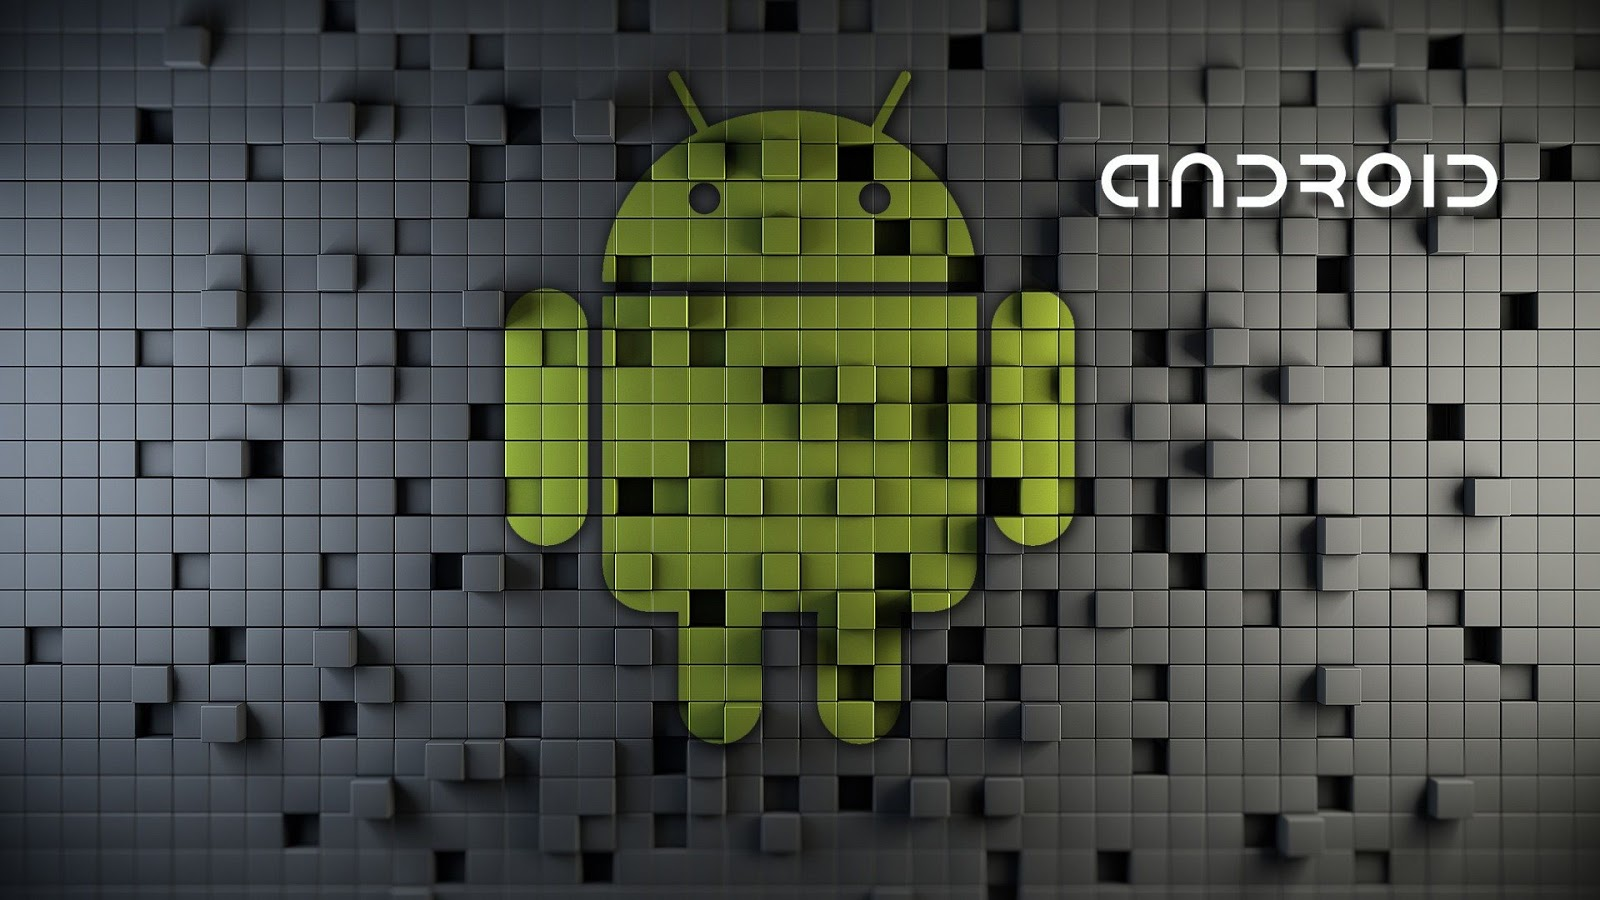 3D Android Crystals Wallpaper Widescreen in HD